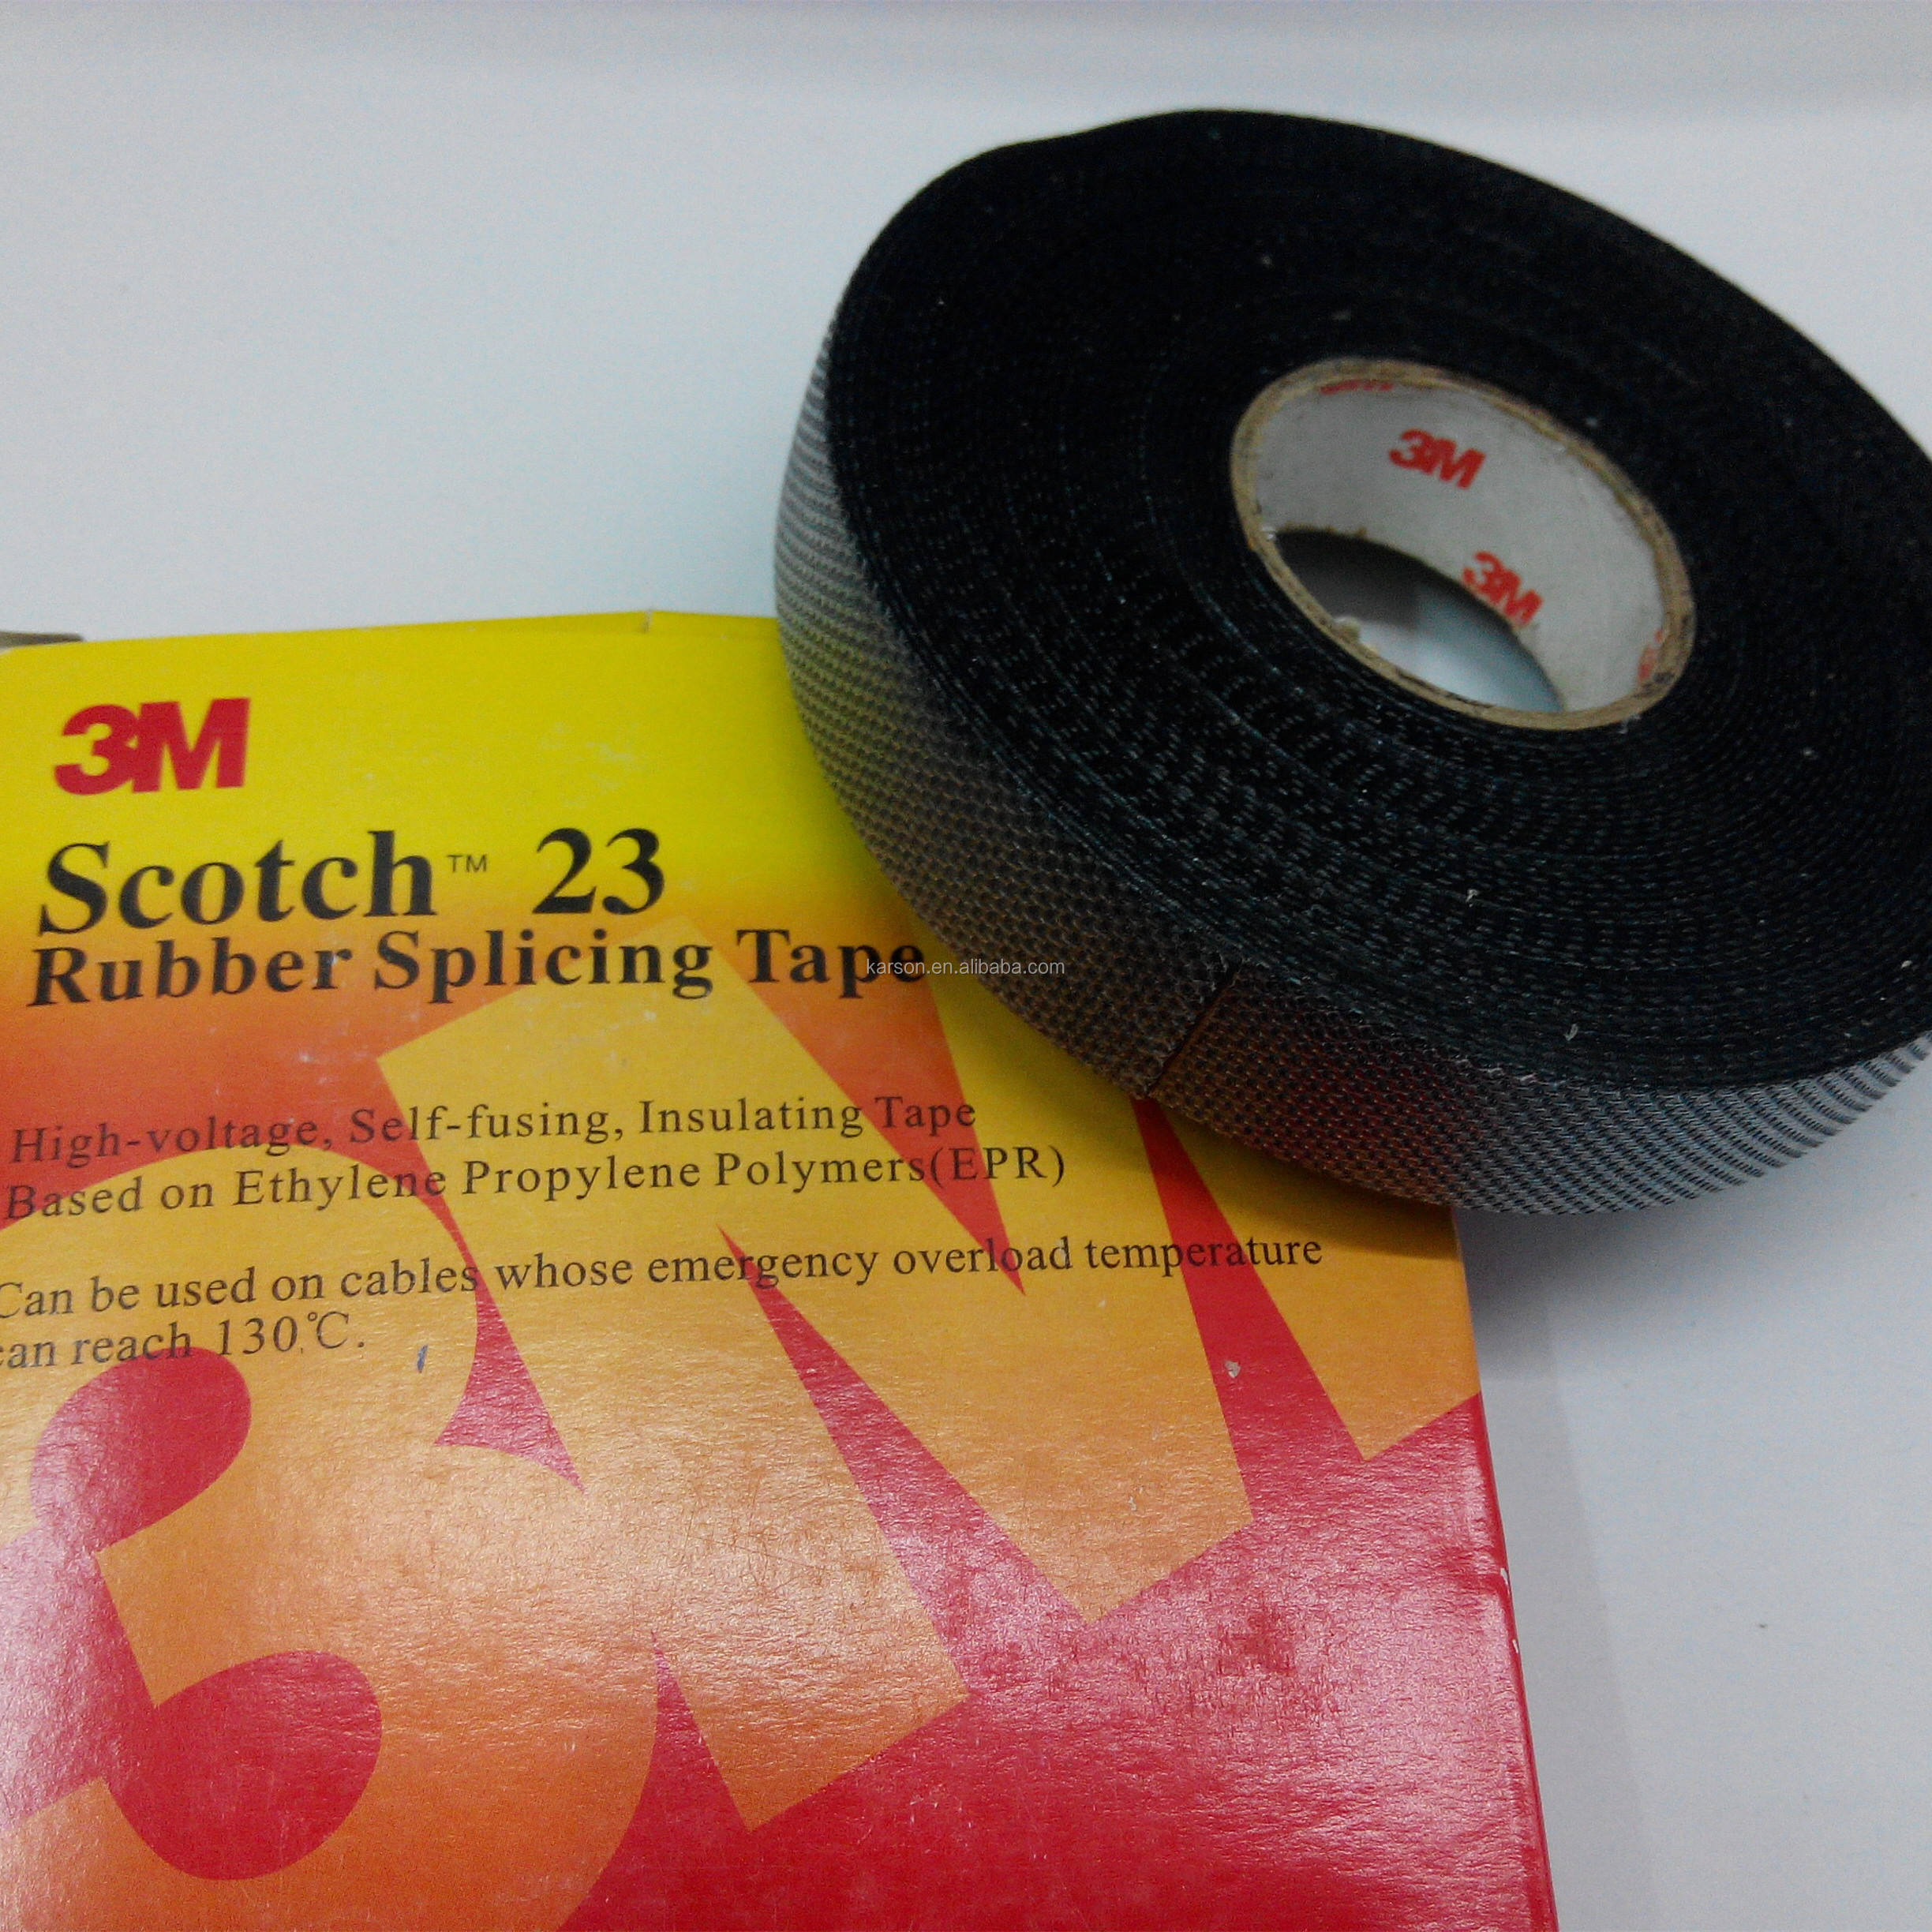 Hoogspanning elektrische tape 23 Rubber tape 19mm breed